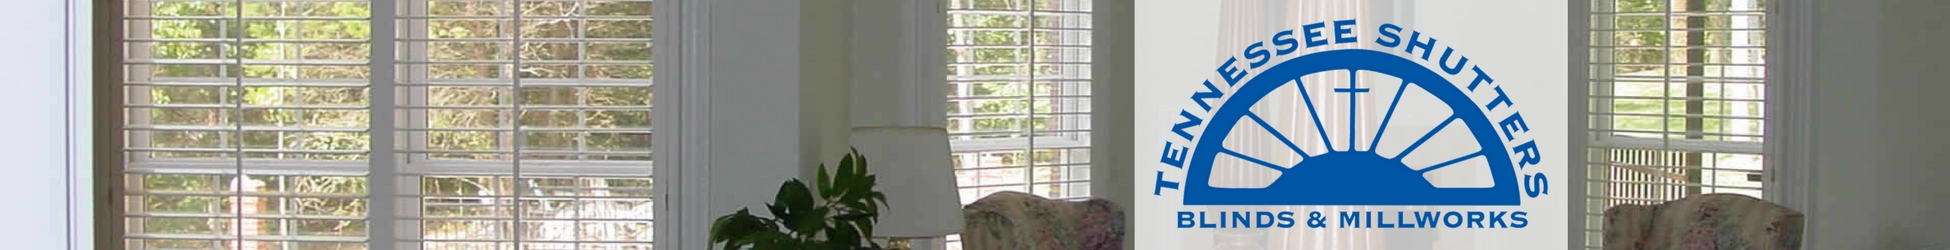 Tennessee Shutters Blinds Millworks Proudly Serving Middle Tennessee